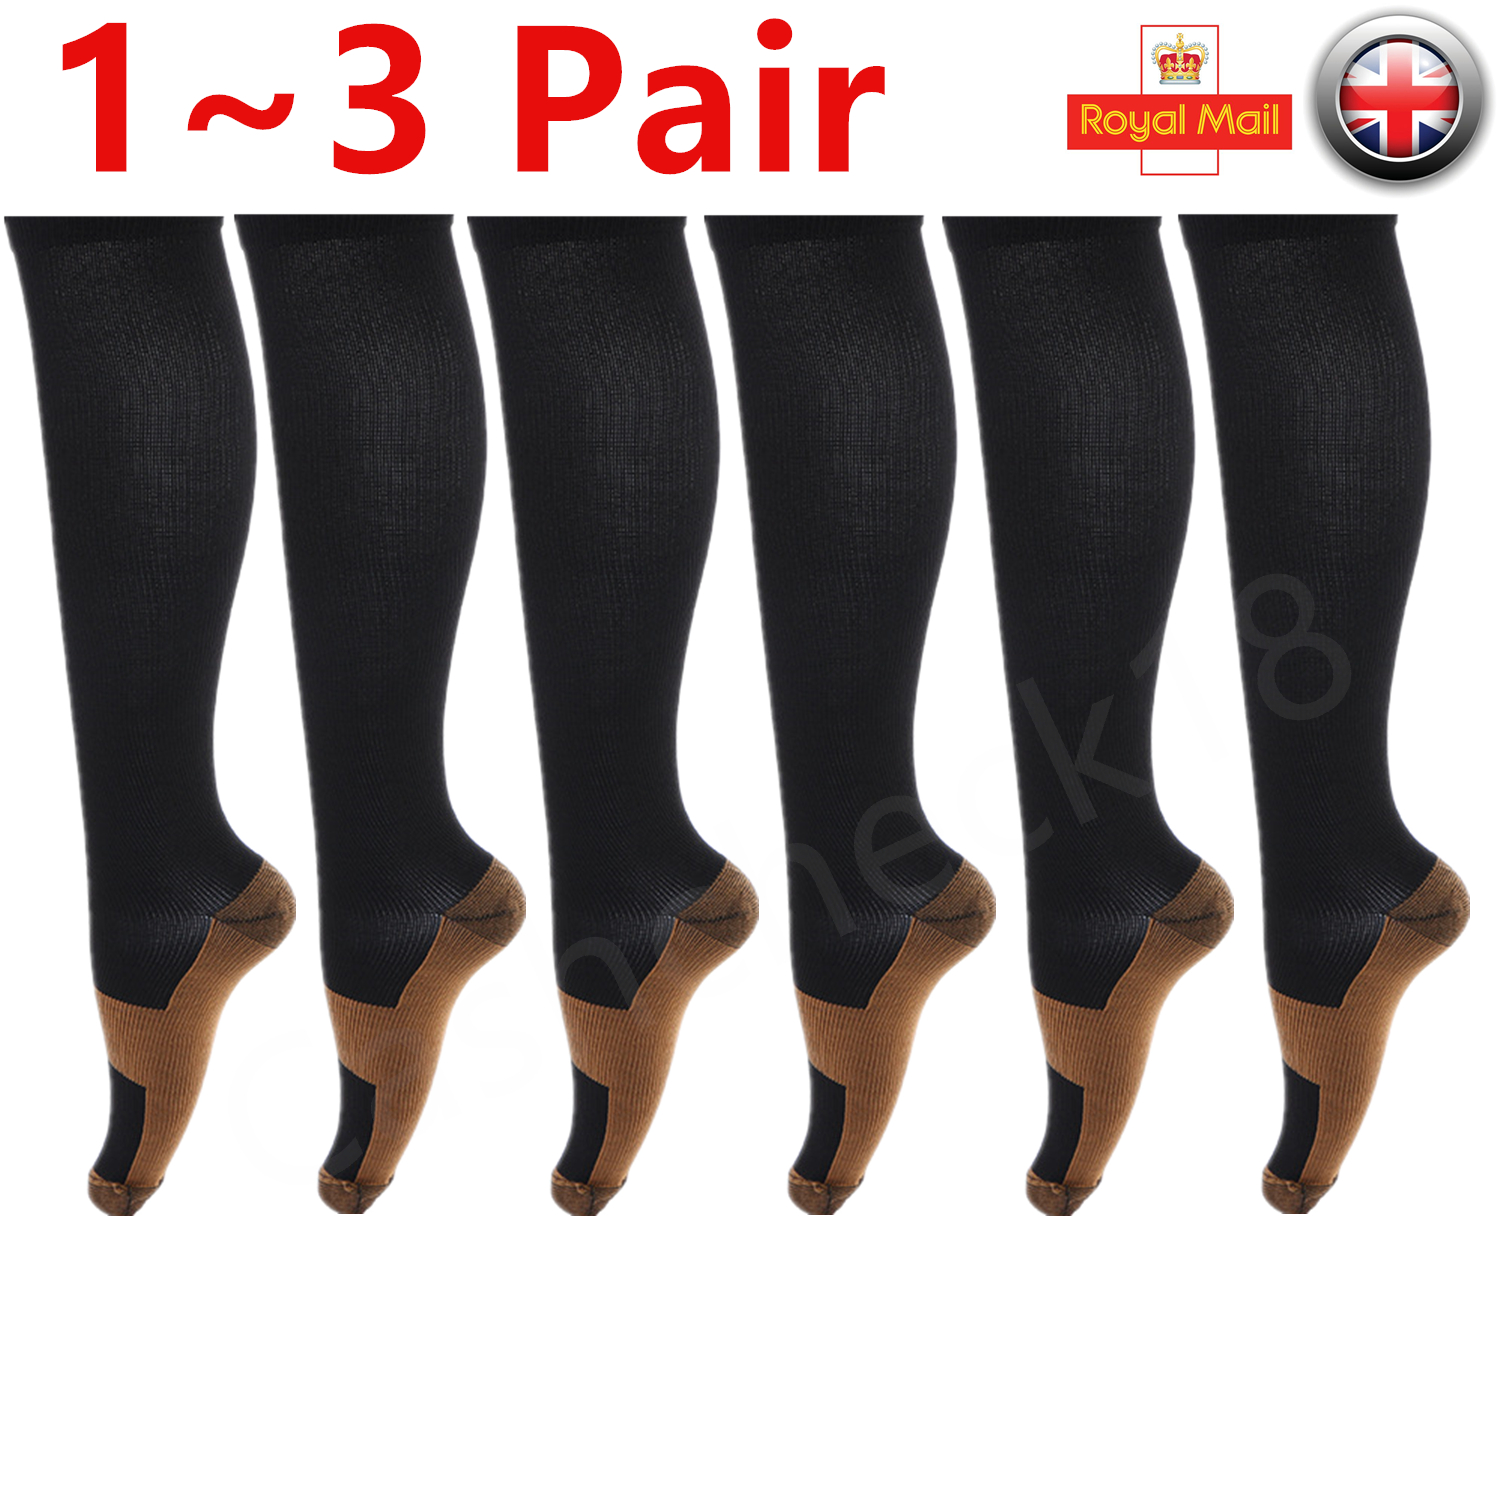 5975a3e0f37839 Details about 1~3Pair Unisex Infused Anti-Fatigue Compression Socks Running  Stocking Men Women